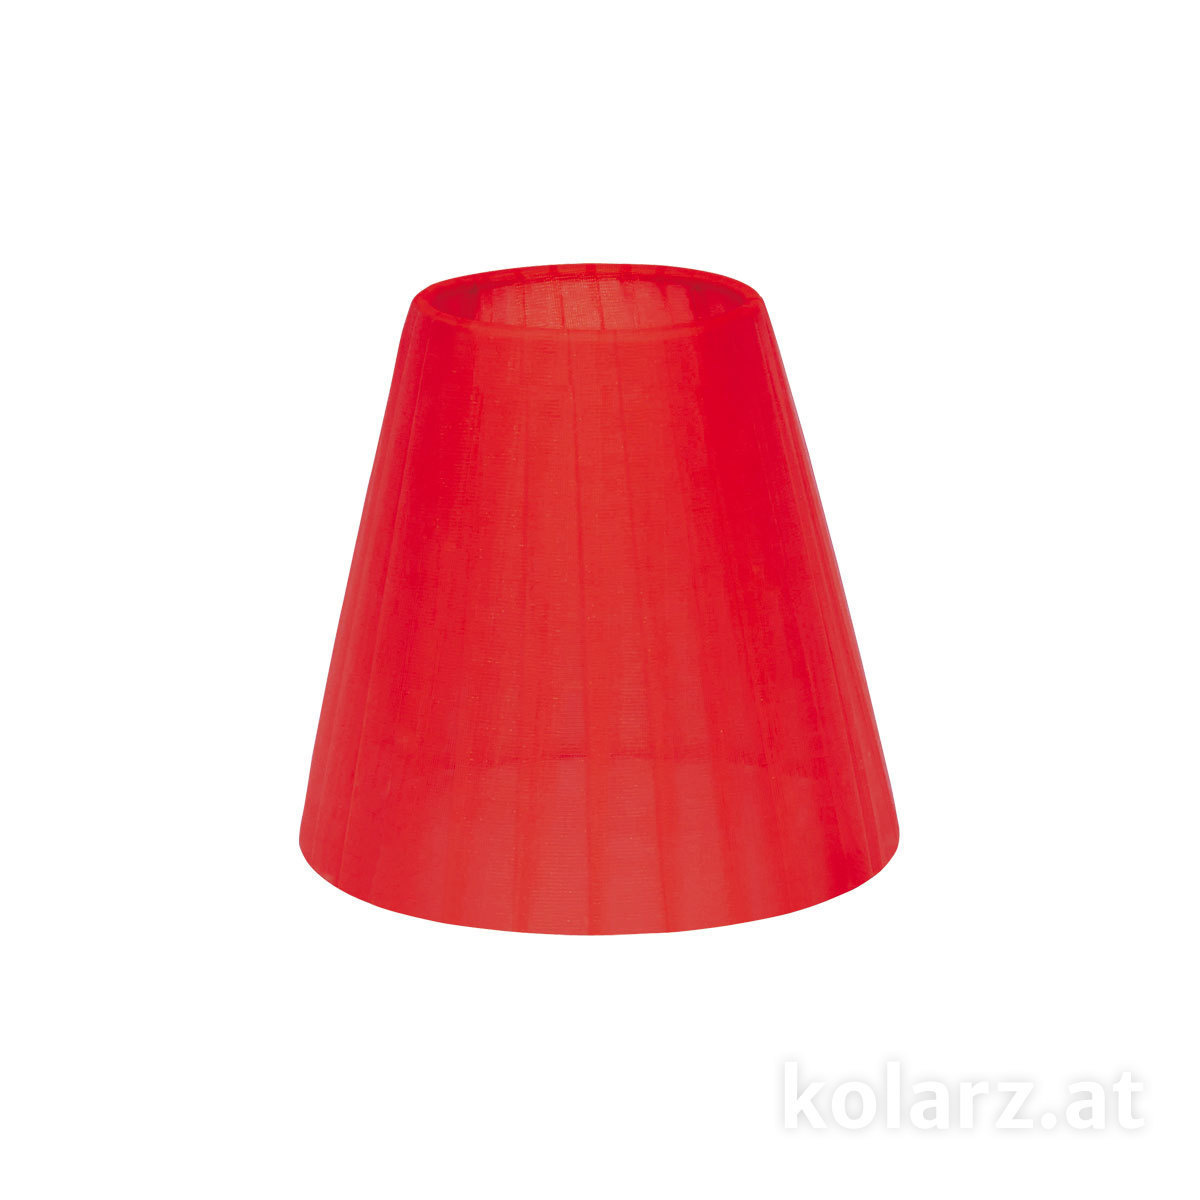 Lampshade shade organza organza red 14cm height 13cm e14 r organza red 14cm height lampshade shade aloadofball Choice Image